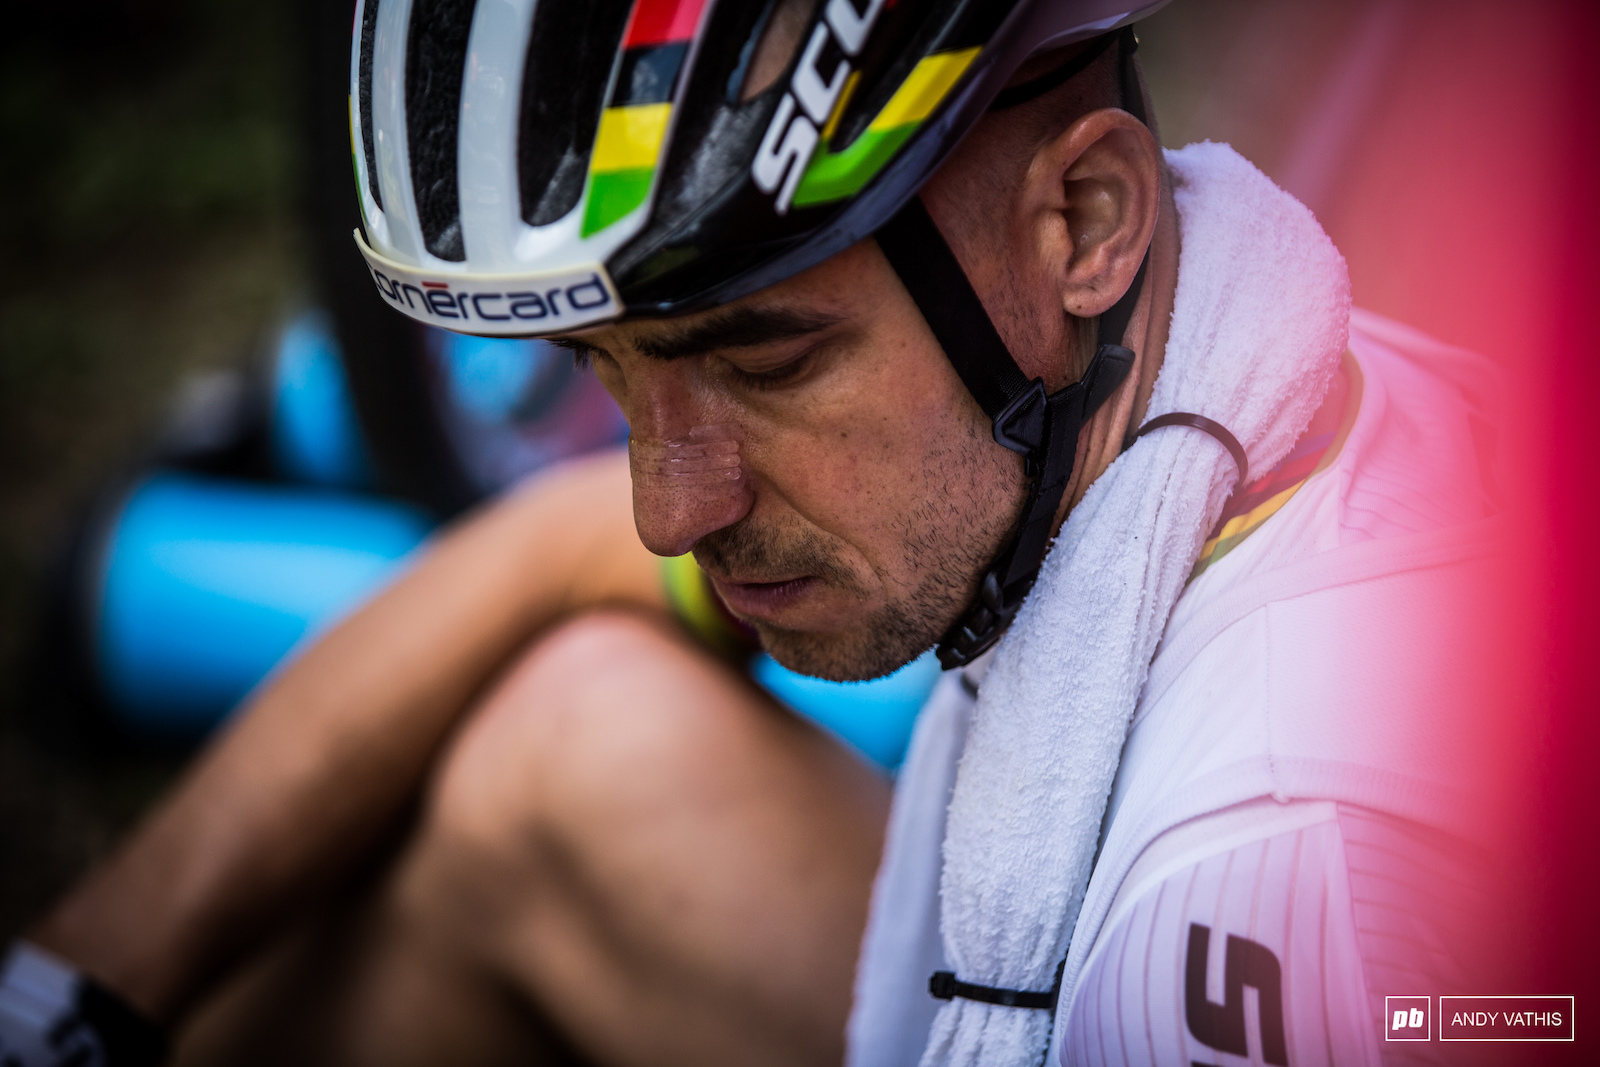 Nino Schurter focusing in on the task at hand. This course will make you suffer.